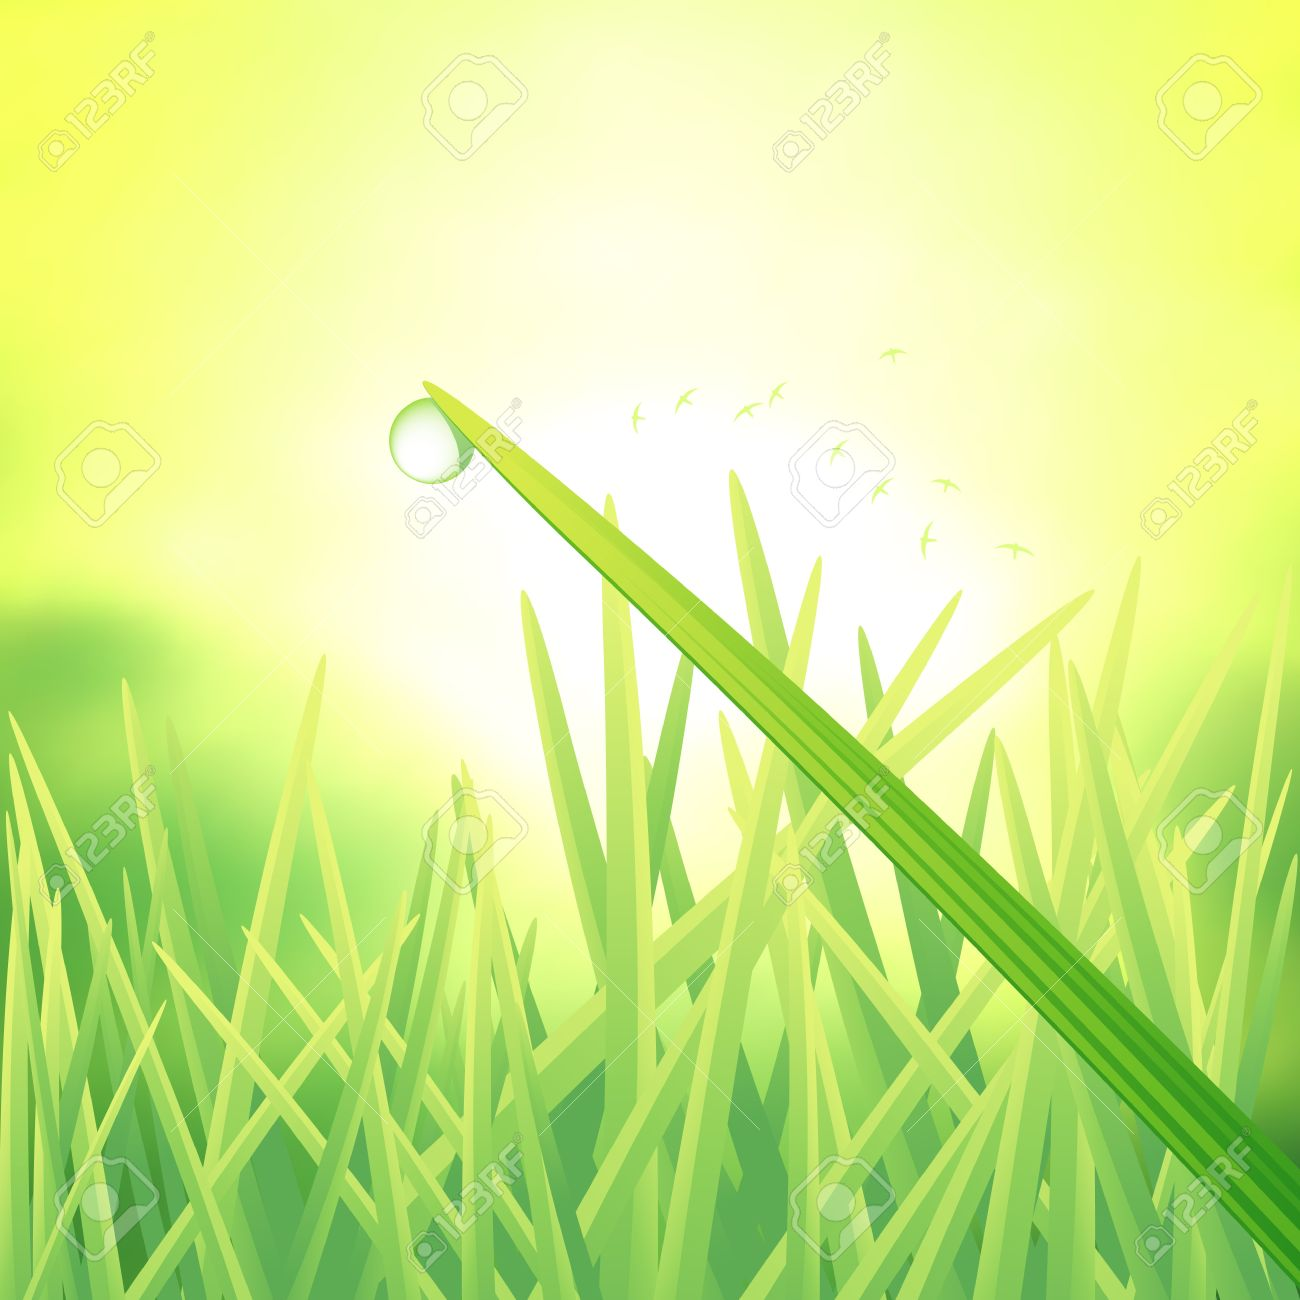 A Single Dew Drop On A Blade Of Grass. Vector Illustration.